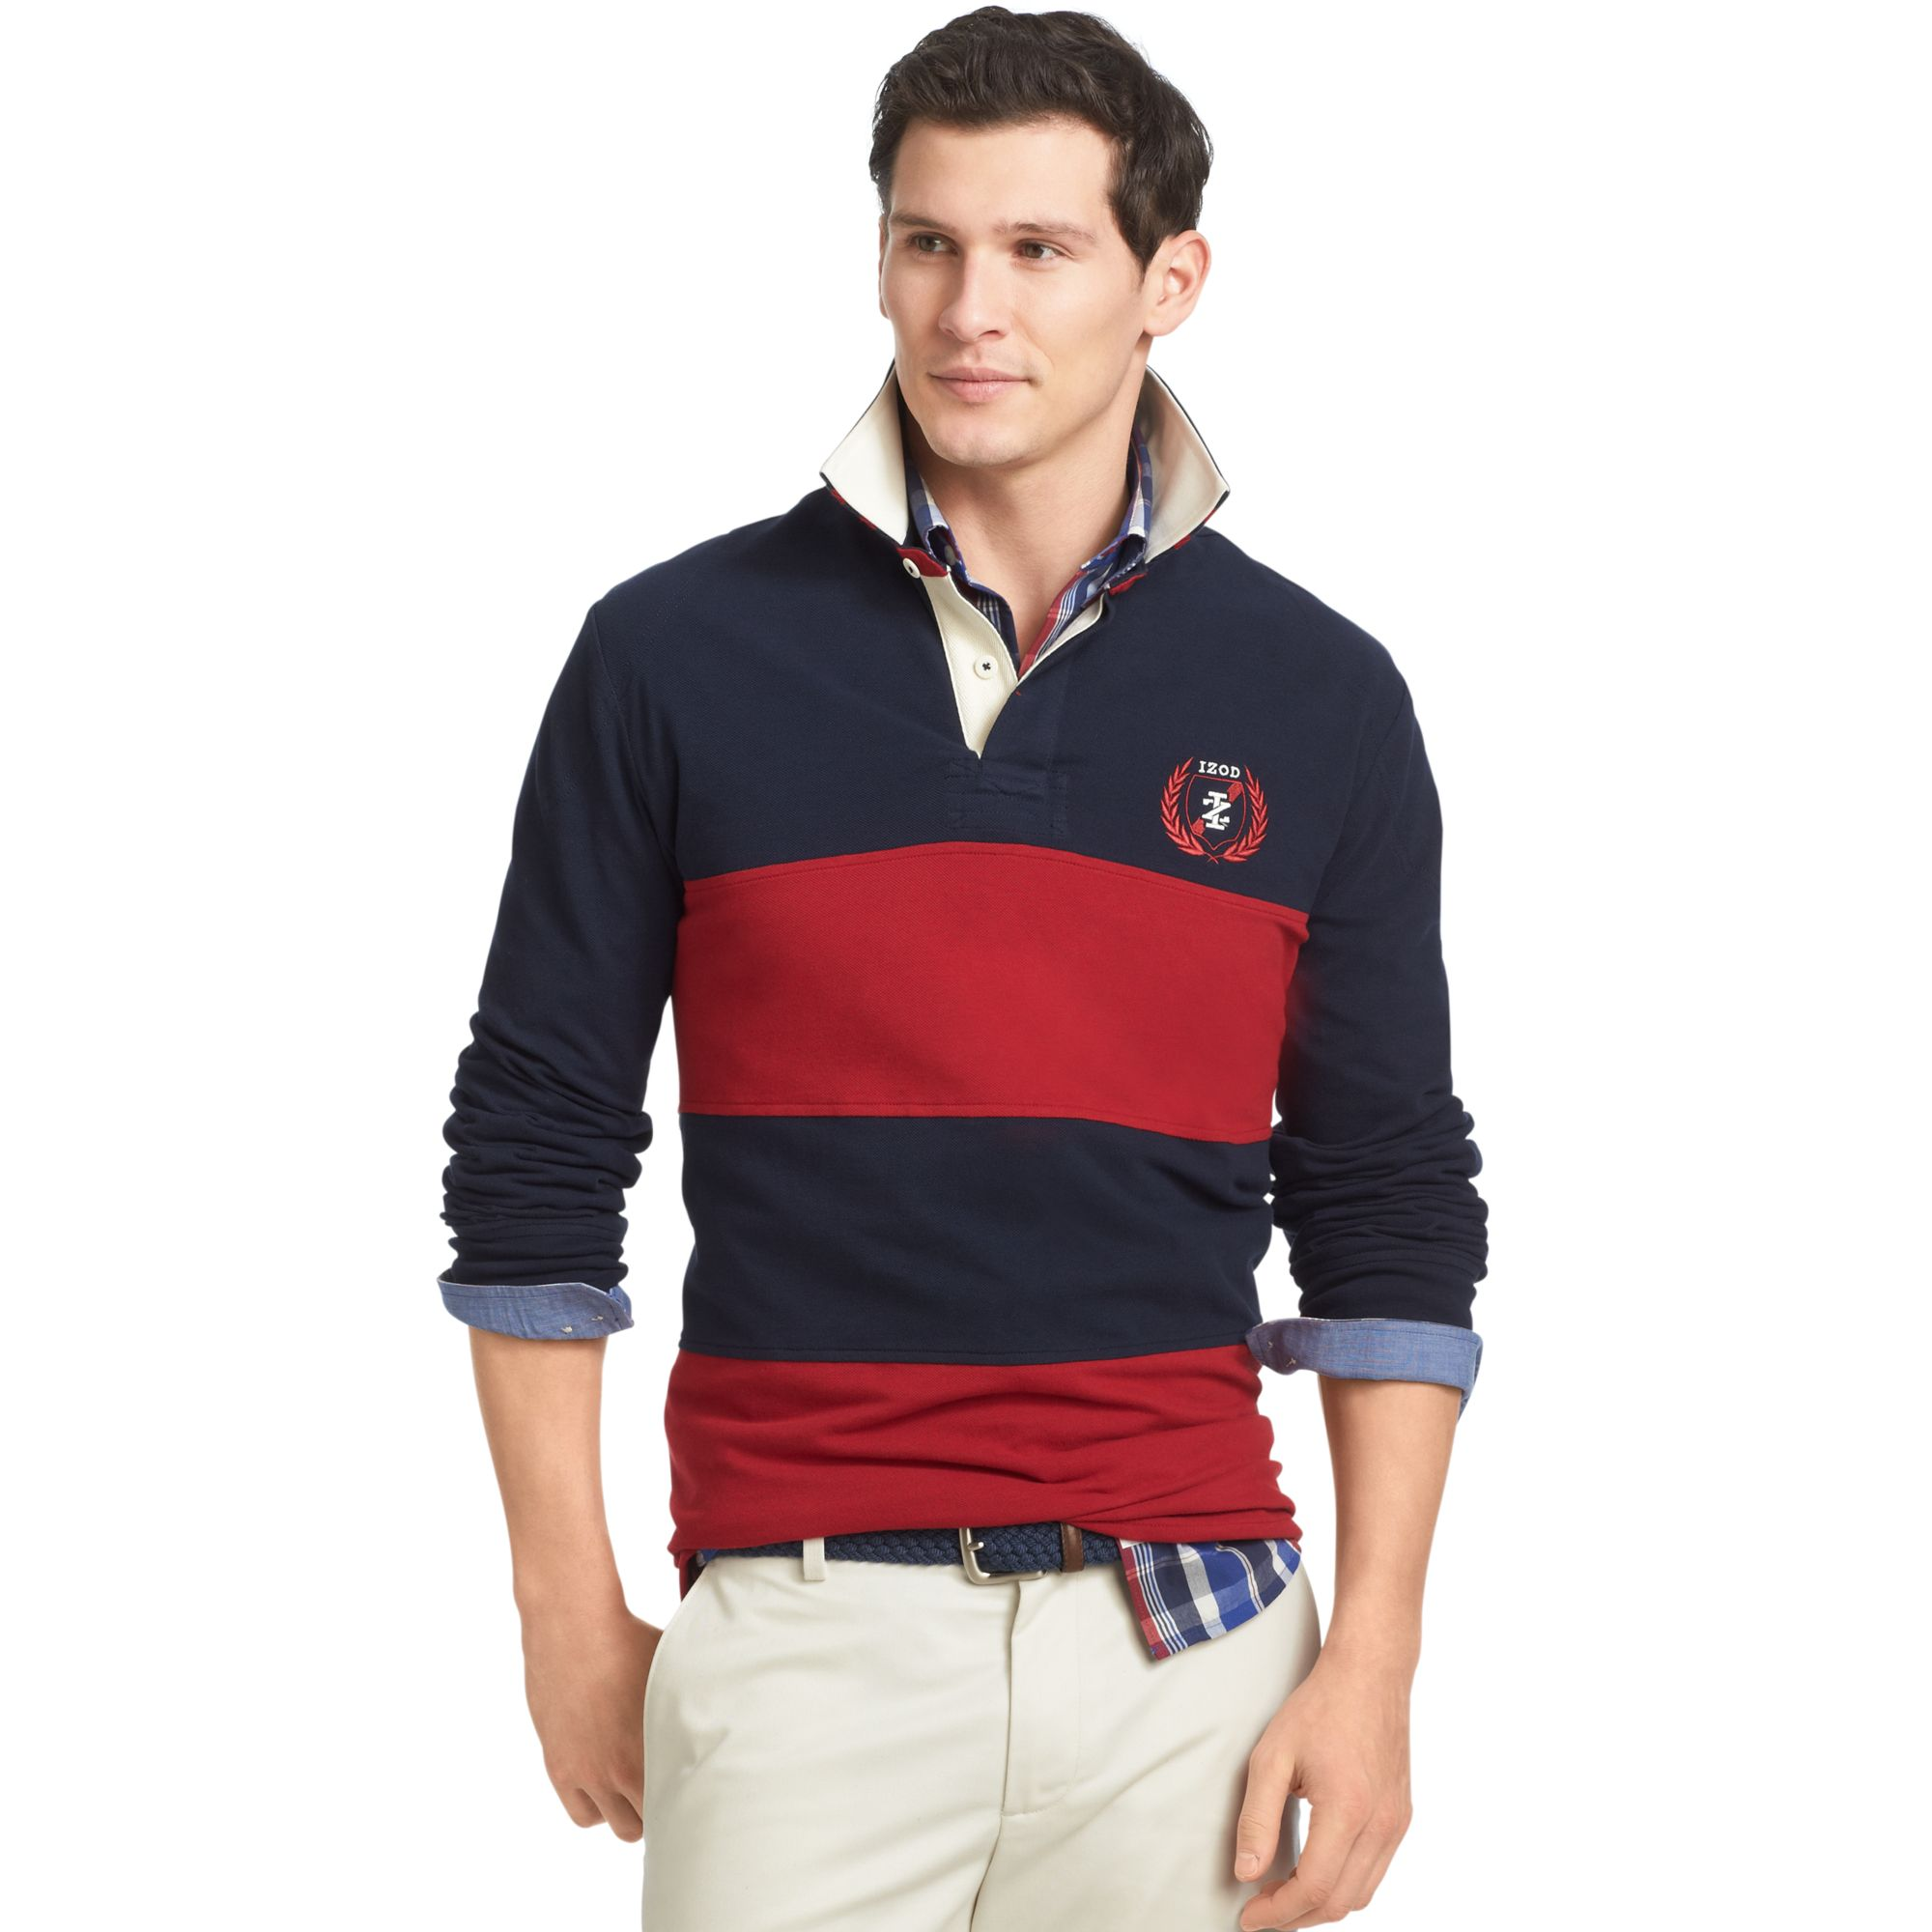 Izod Shirt Long Sleeve Striped Rugby Polo In Multicolor